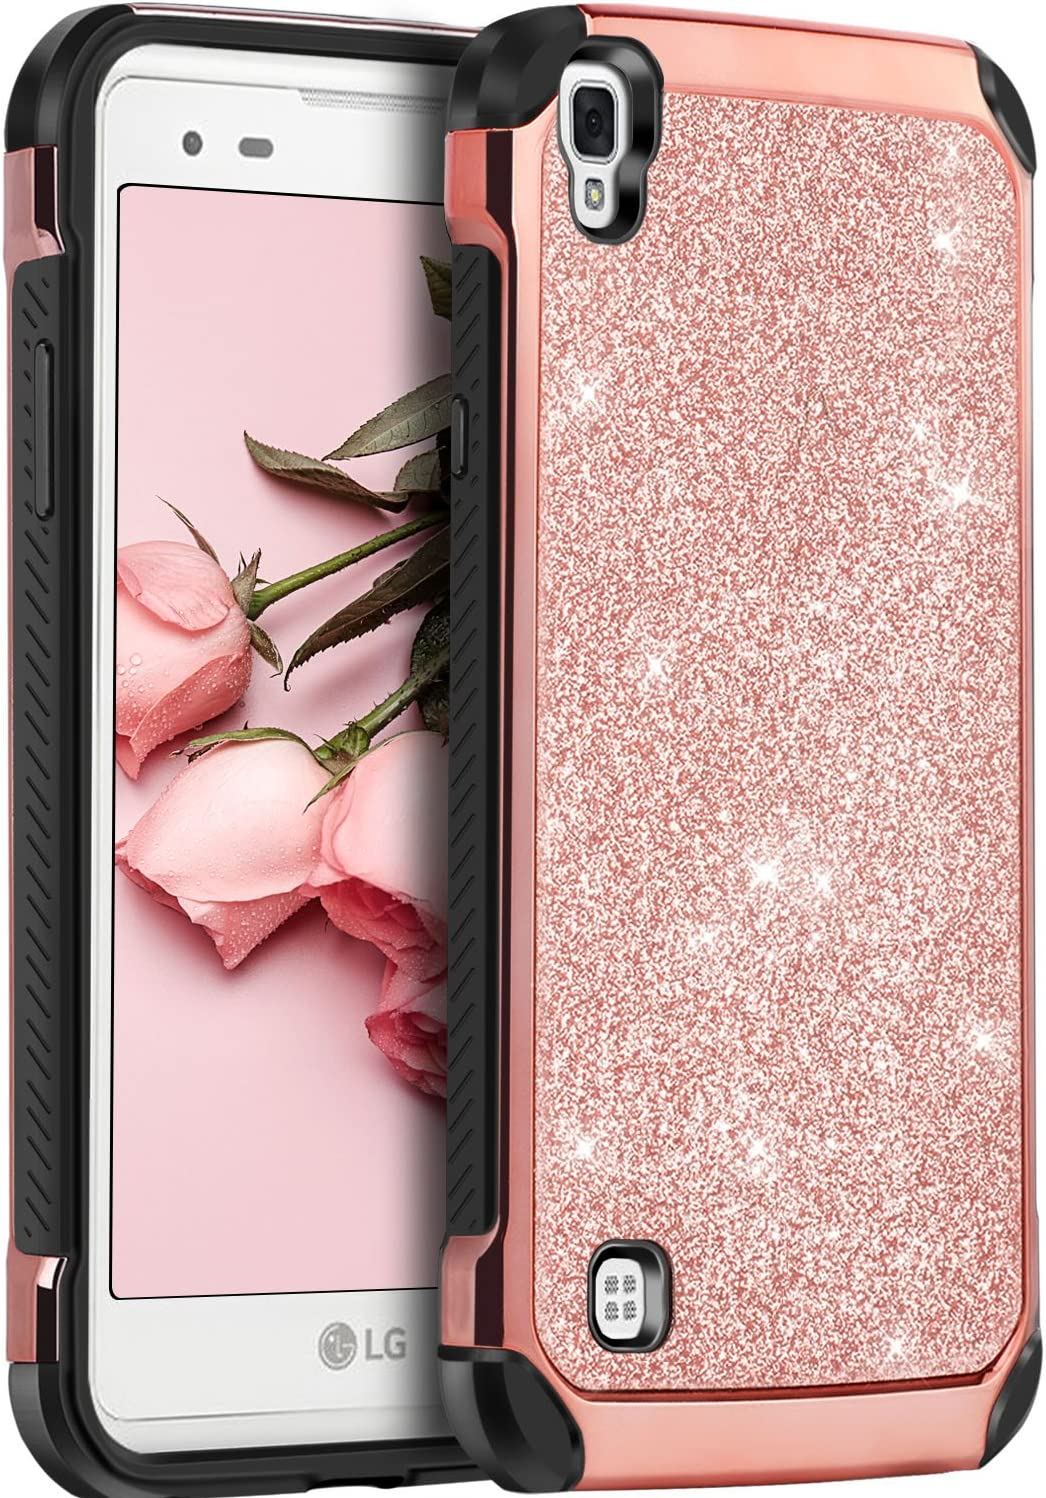 LG Tribute HD Case, LG X Style Case, LG Volt 3 Case,BENTOBEN Glitter Bling Slim Hybrid Soft Rubber Hard Cover Sparkly PU Leather Protective Phone Case for LG Tribute HD/X Style/Volt 3/LS676,Rose Gold